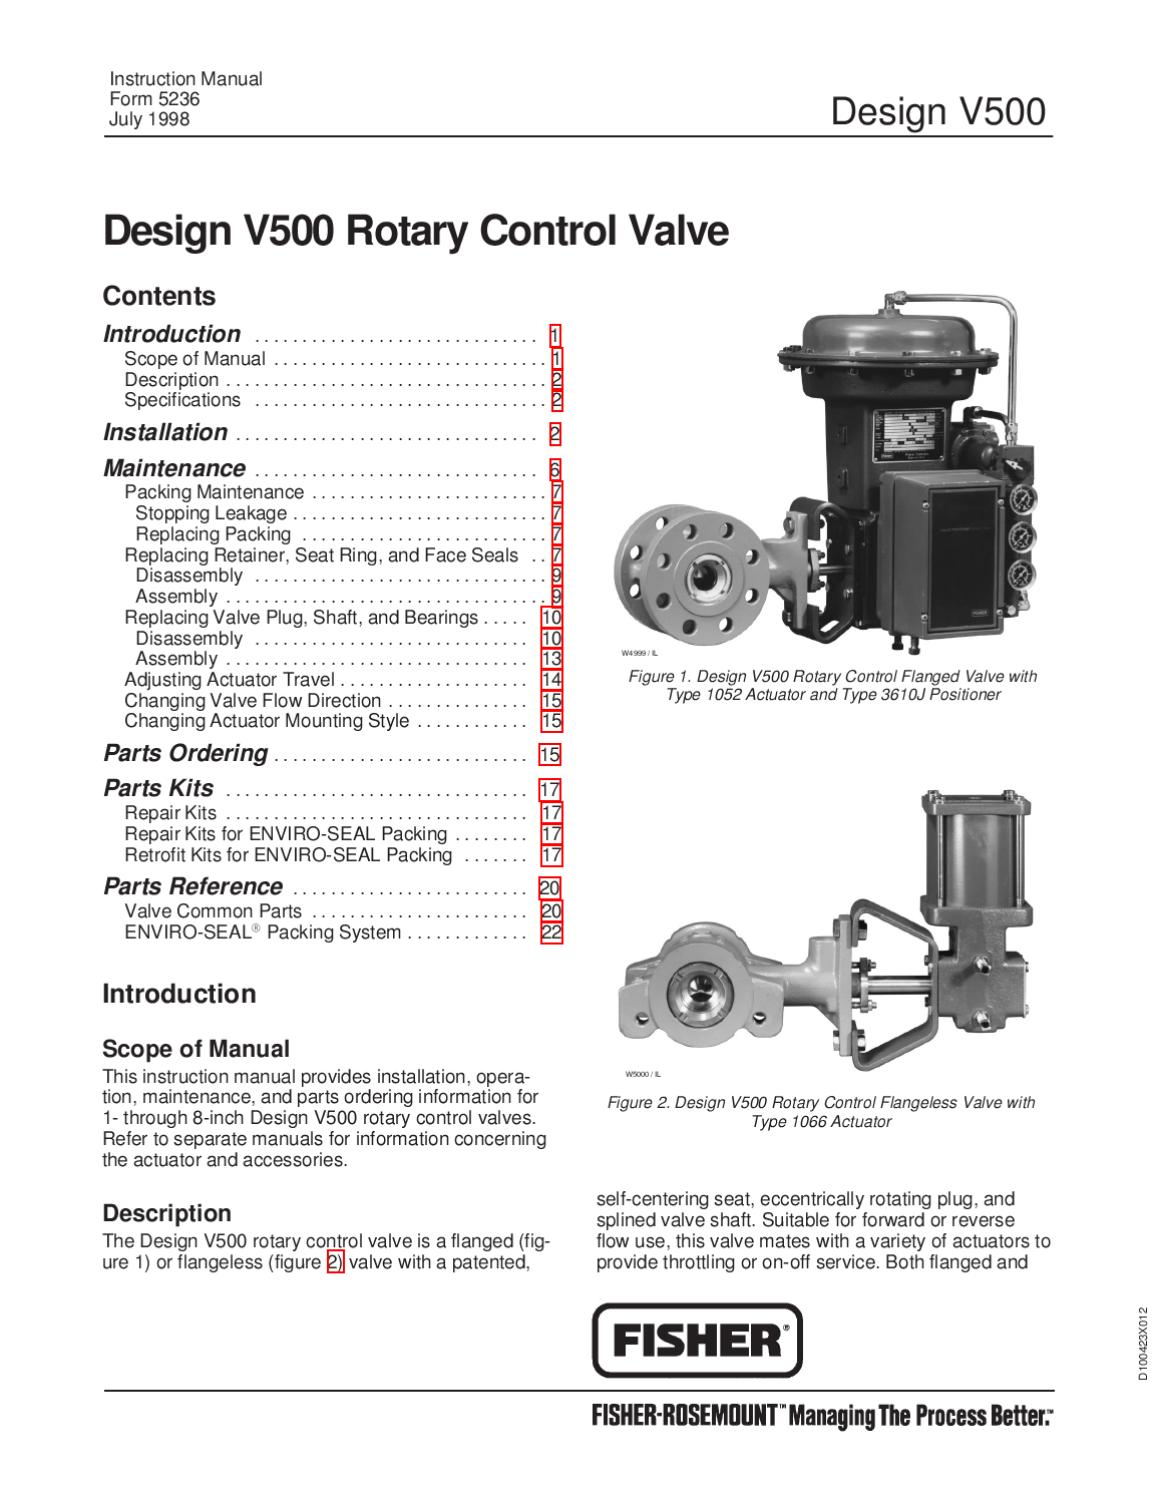 fisher v500 instruction manual